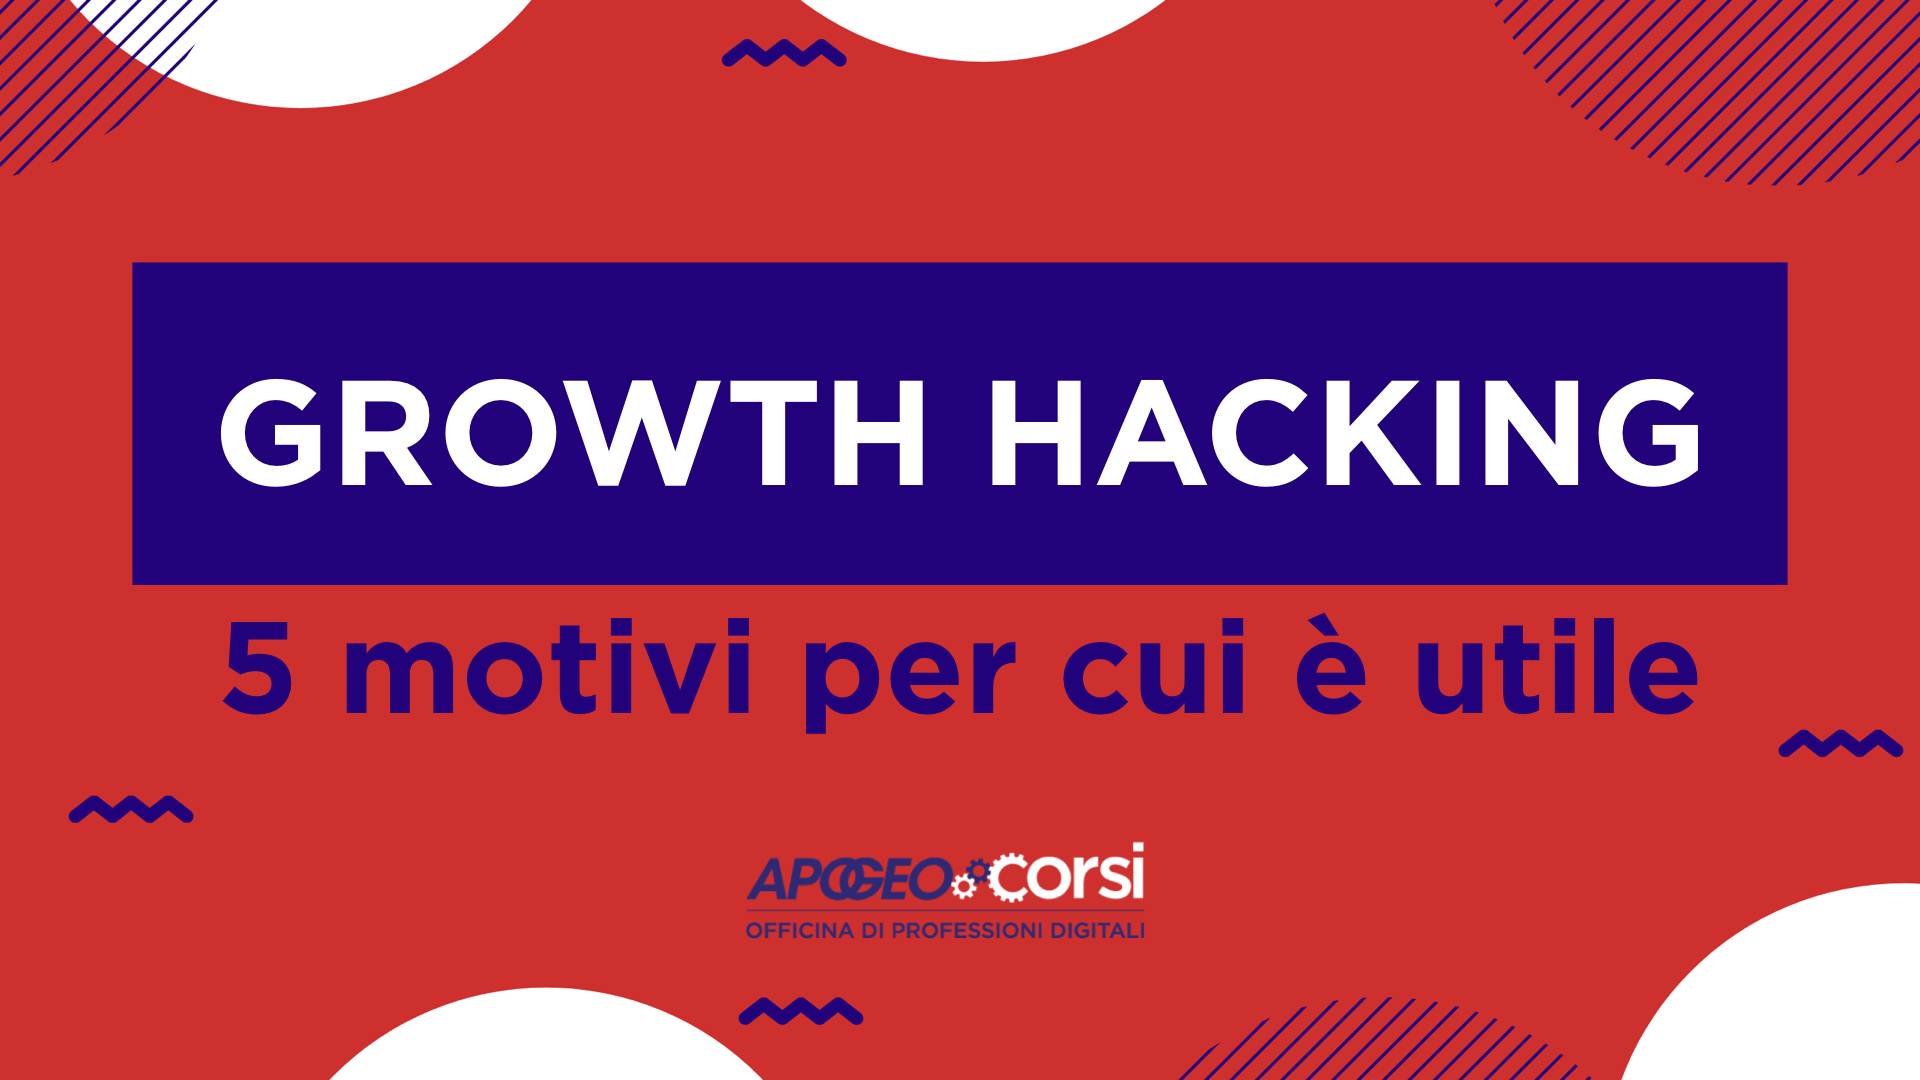 Growth Hacking: 5 motivi per cui è utile